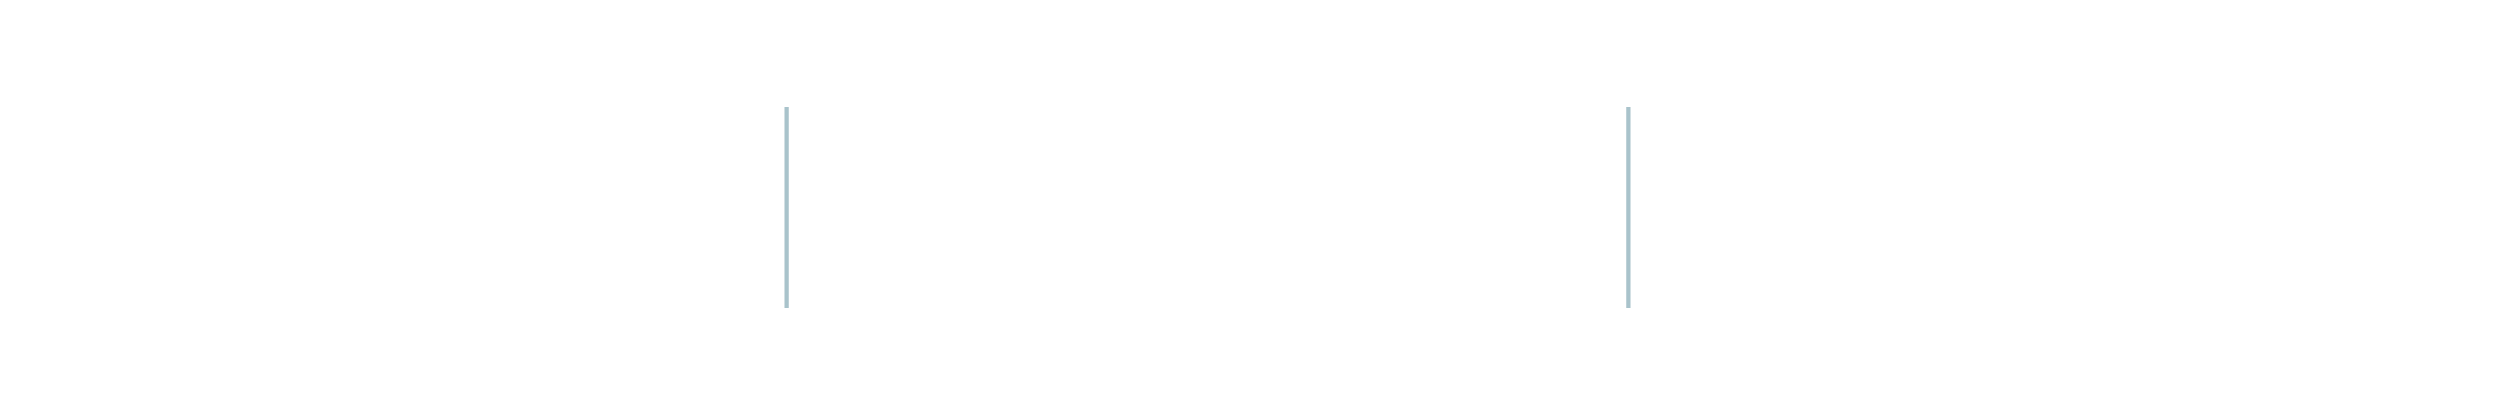 Financial stats associated with contributions to the community | UCHealth Community Benefit Report 2019